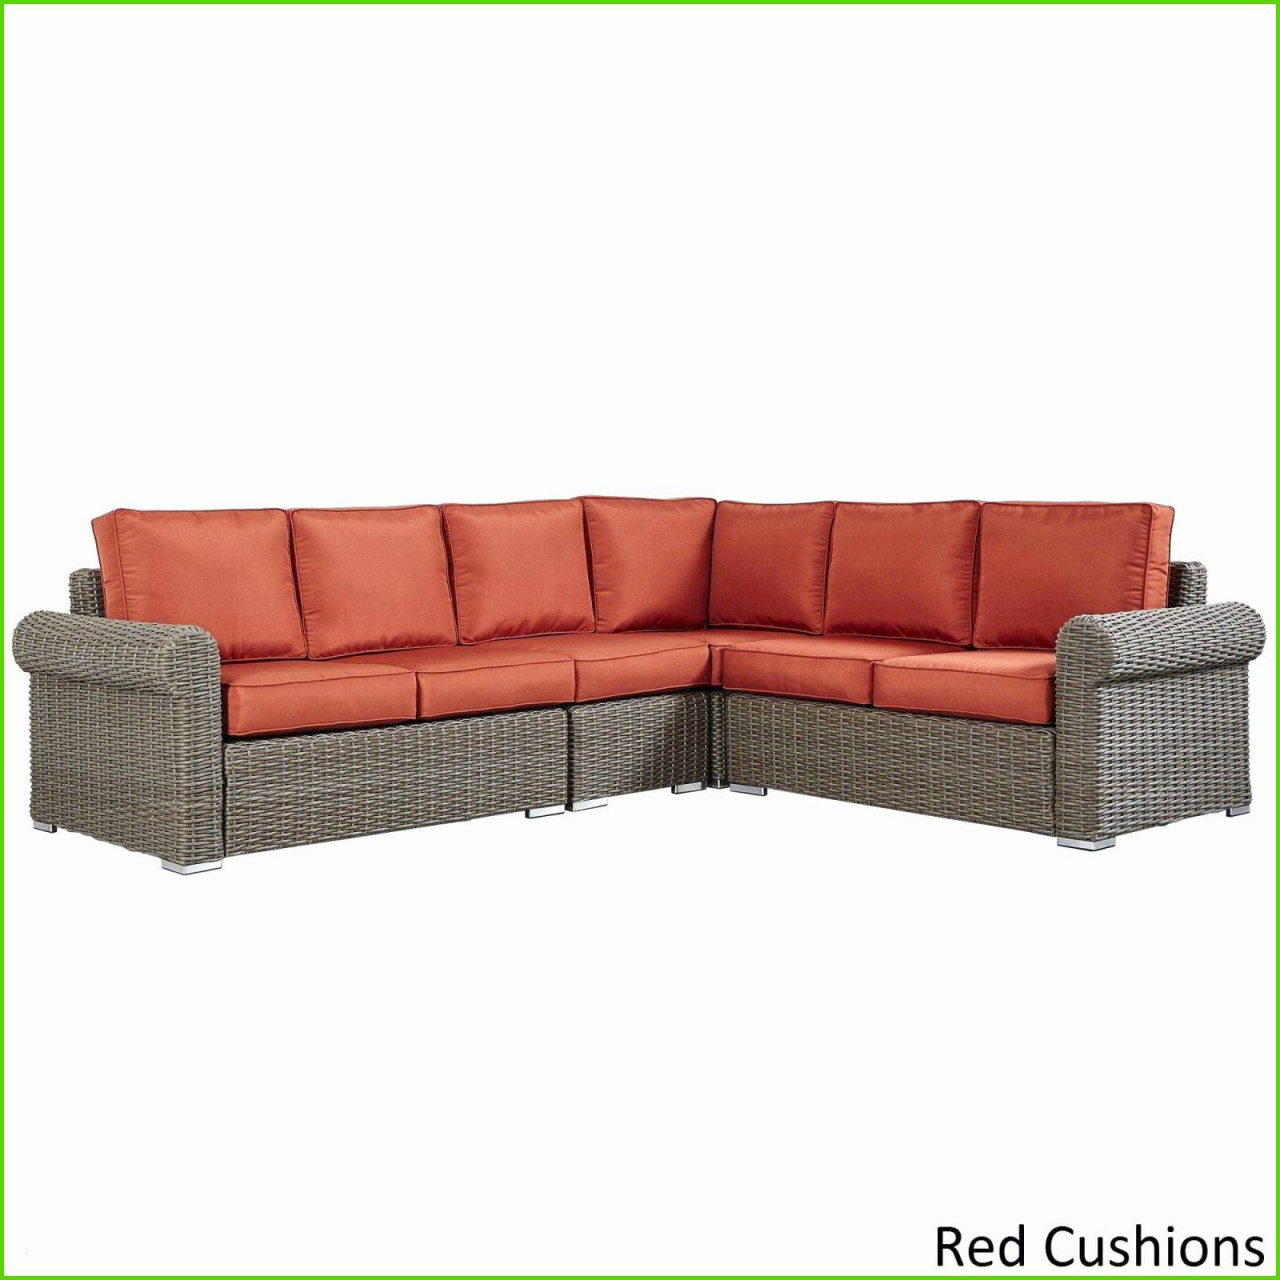 outdoor daybed outdoor sofa holz rattan outdoor furniture fresh sofa design durch outdoor daybed